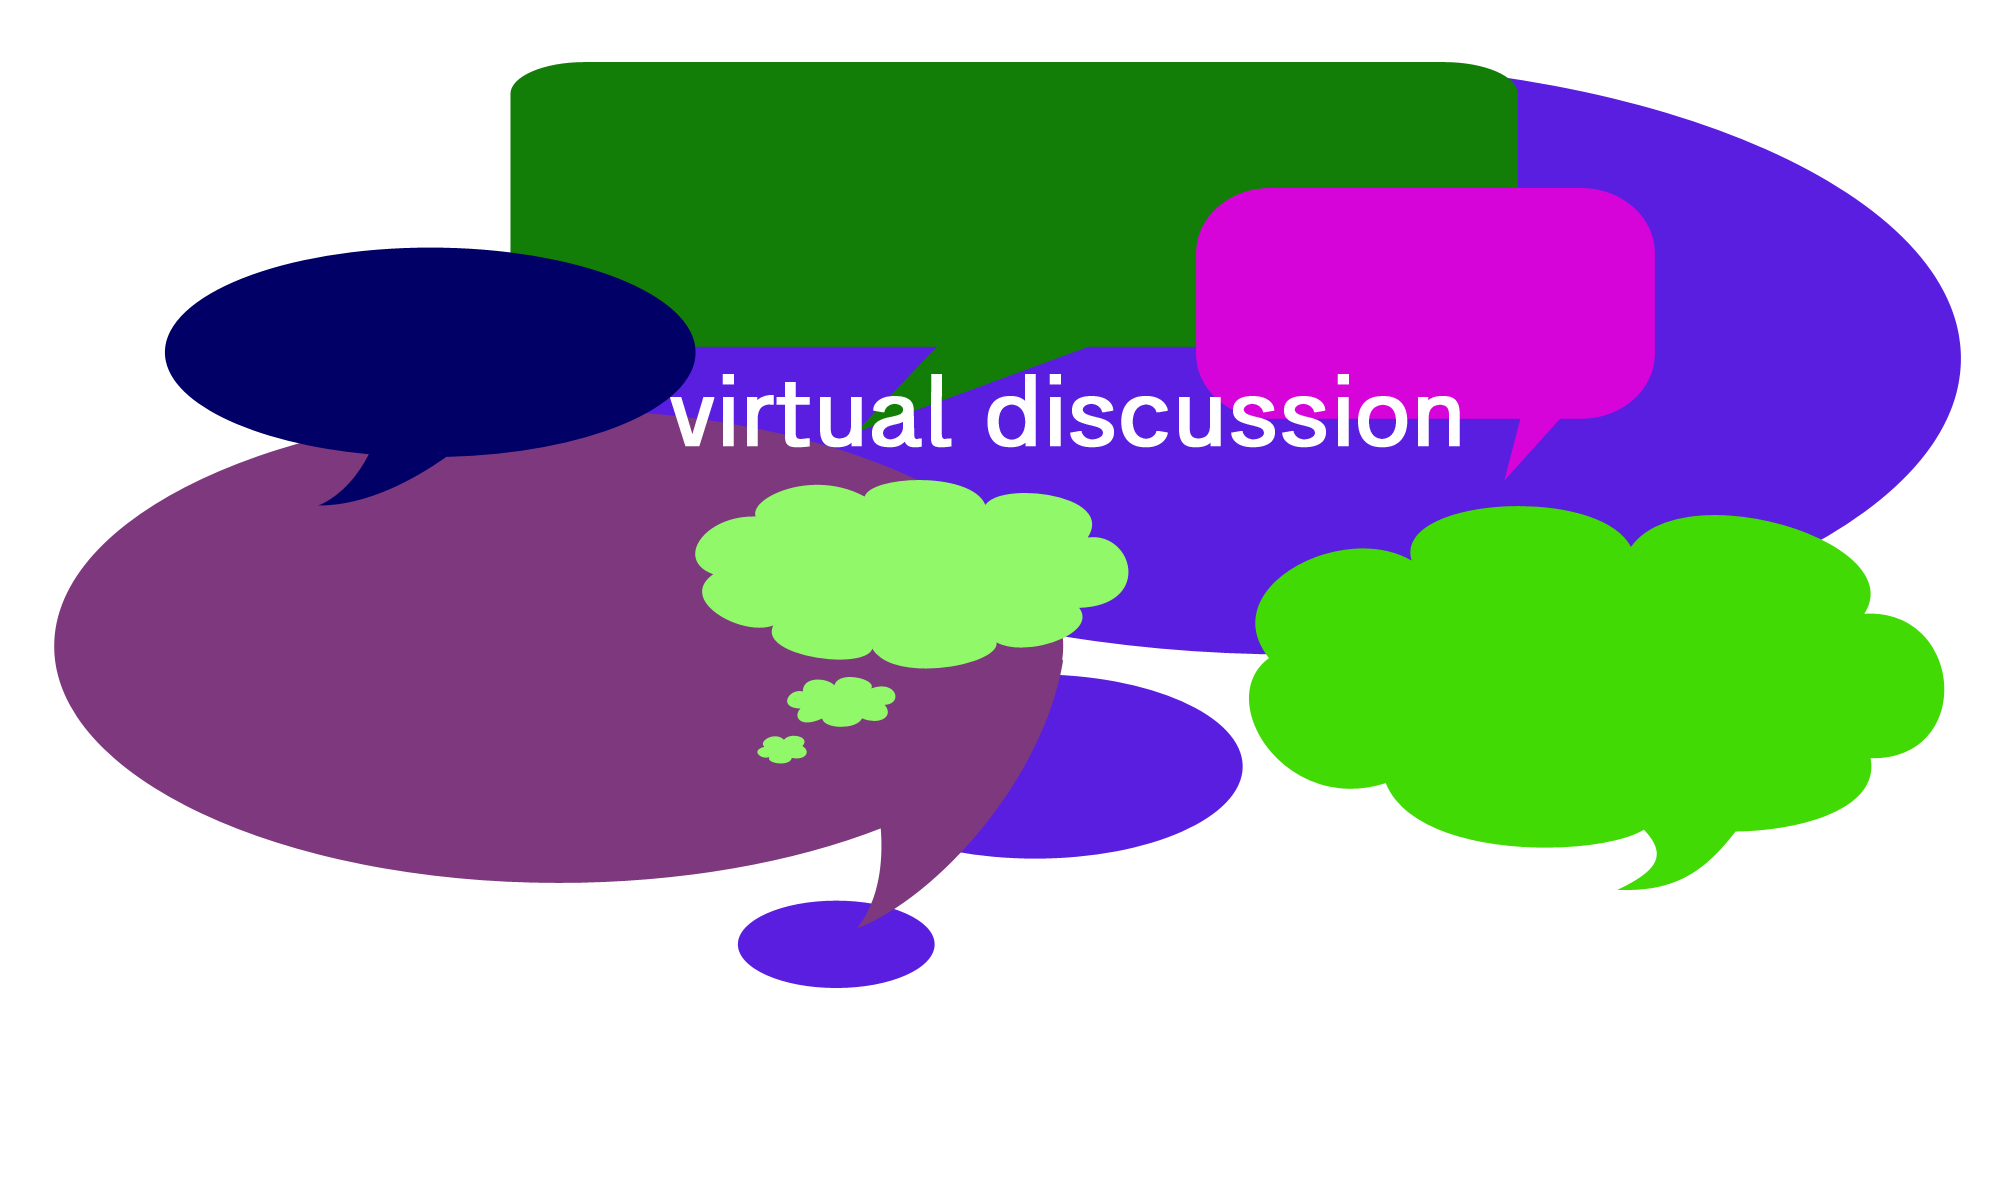 virtual discussions